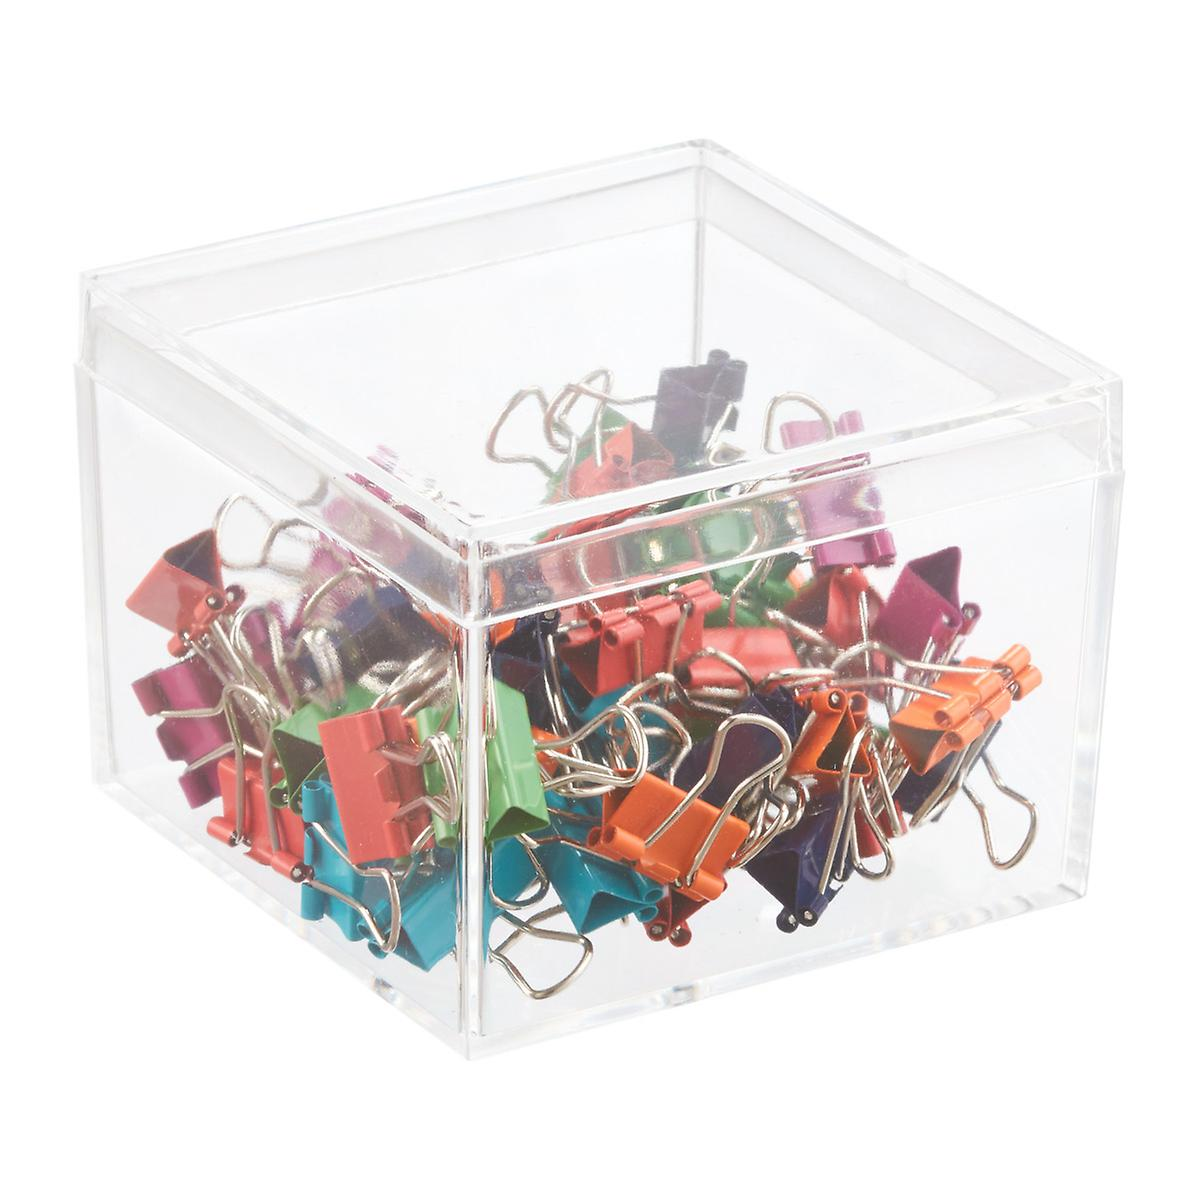 Assorted Mini Binder Clips